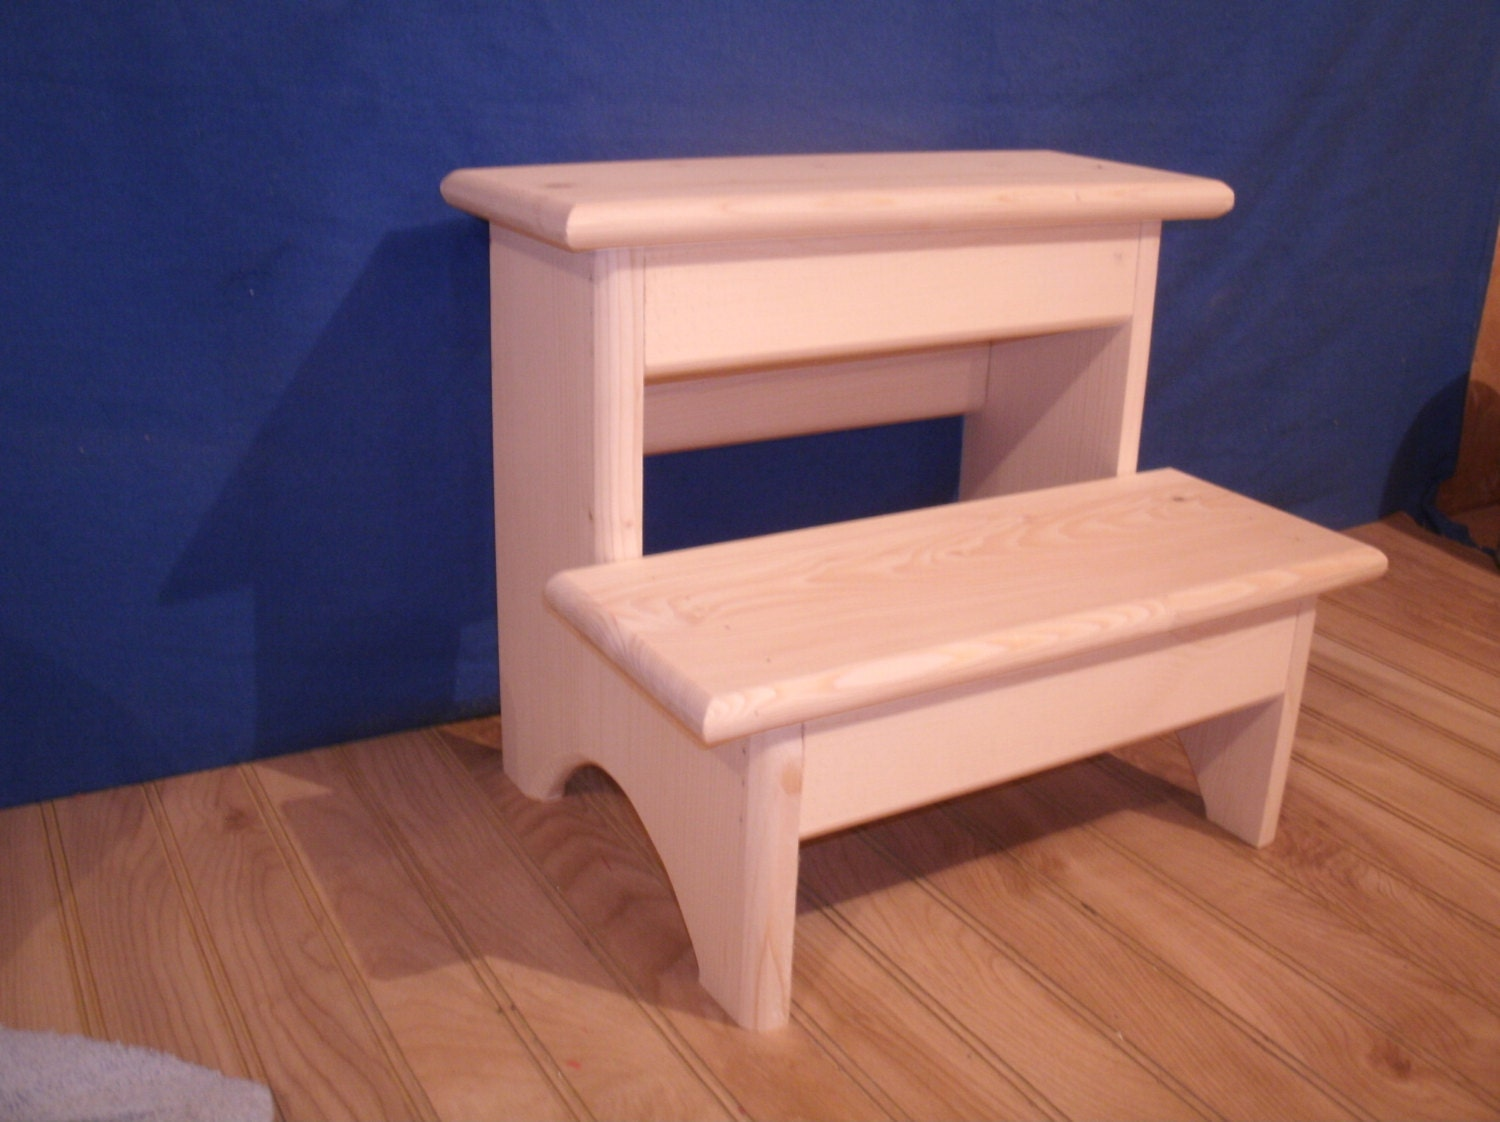 Rustic Wooden Step Stool 2 Step Wooden Step Stool Wooden